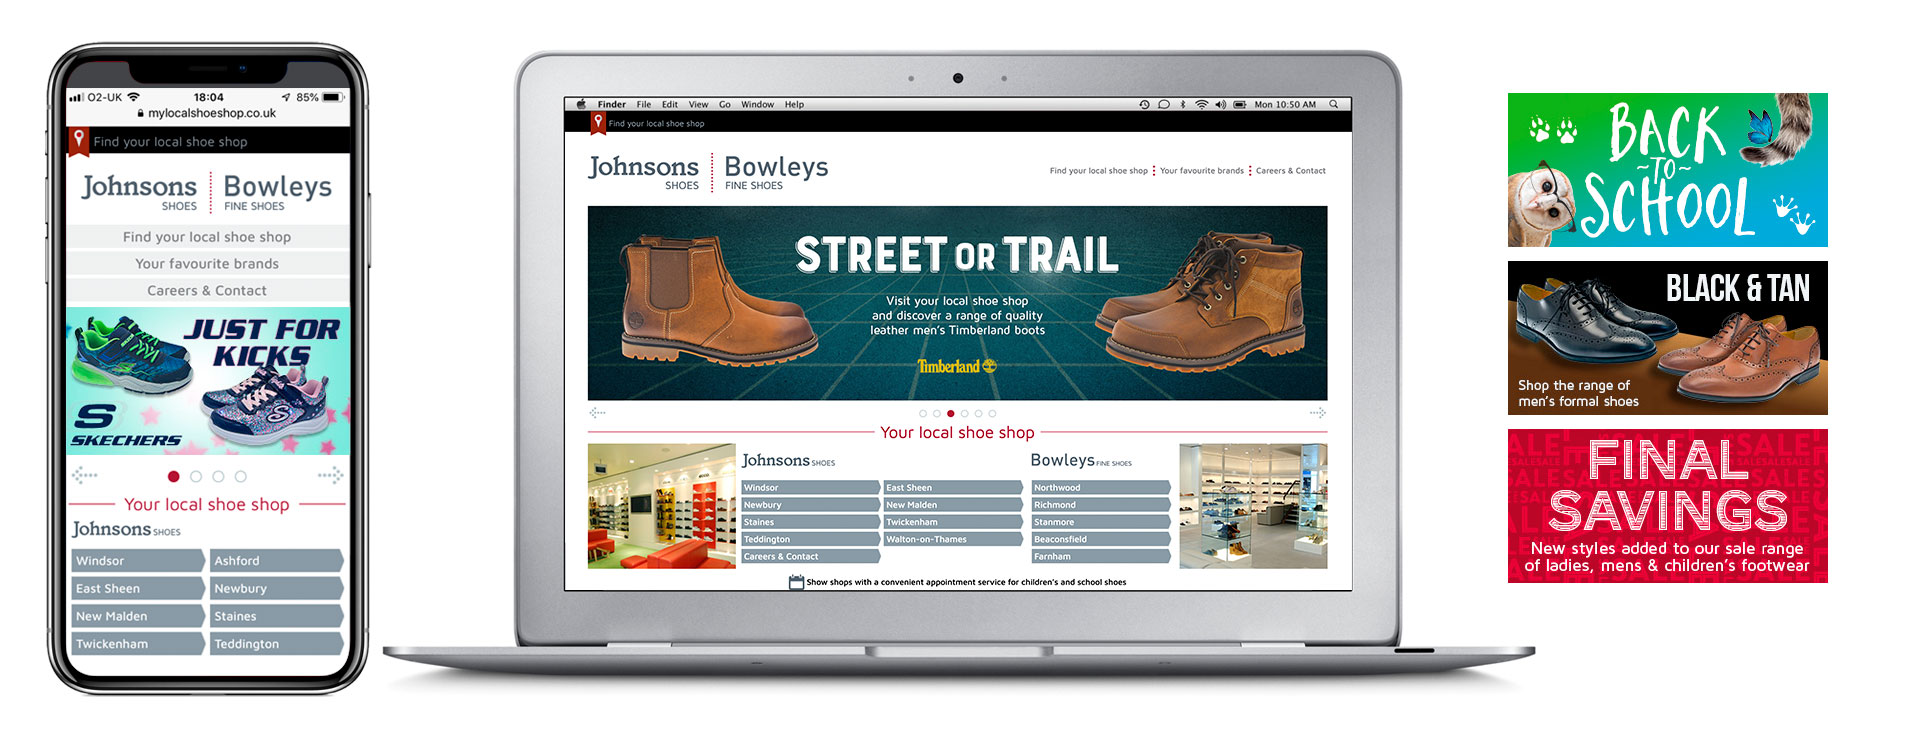 Wordpress theme for a high street retailer